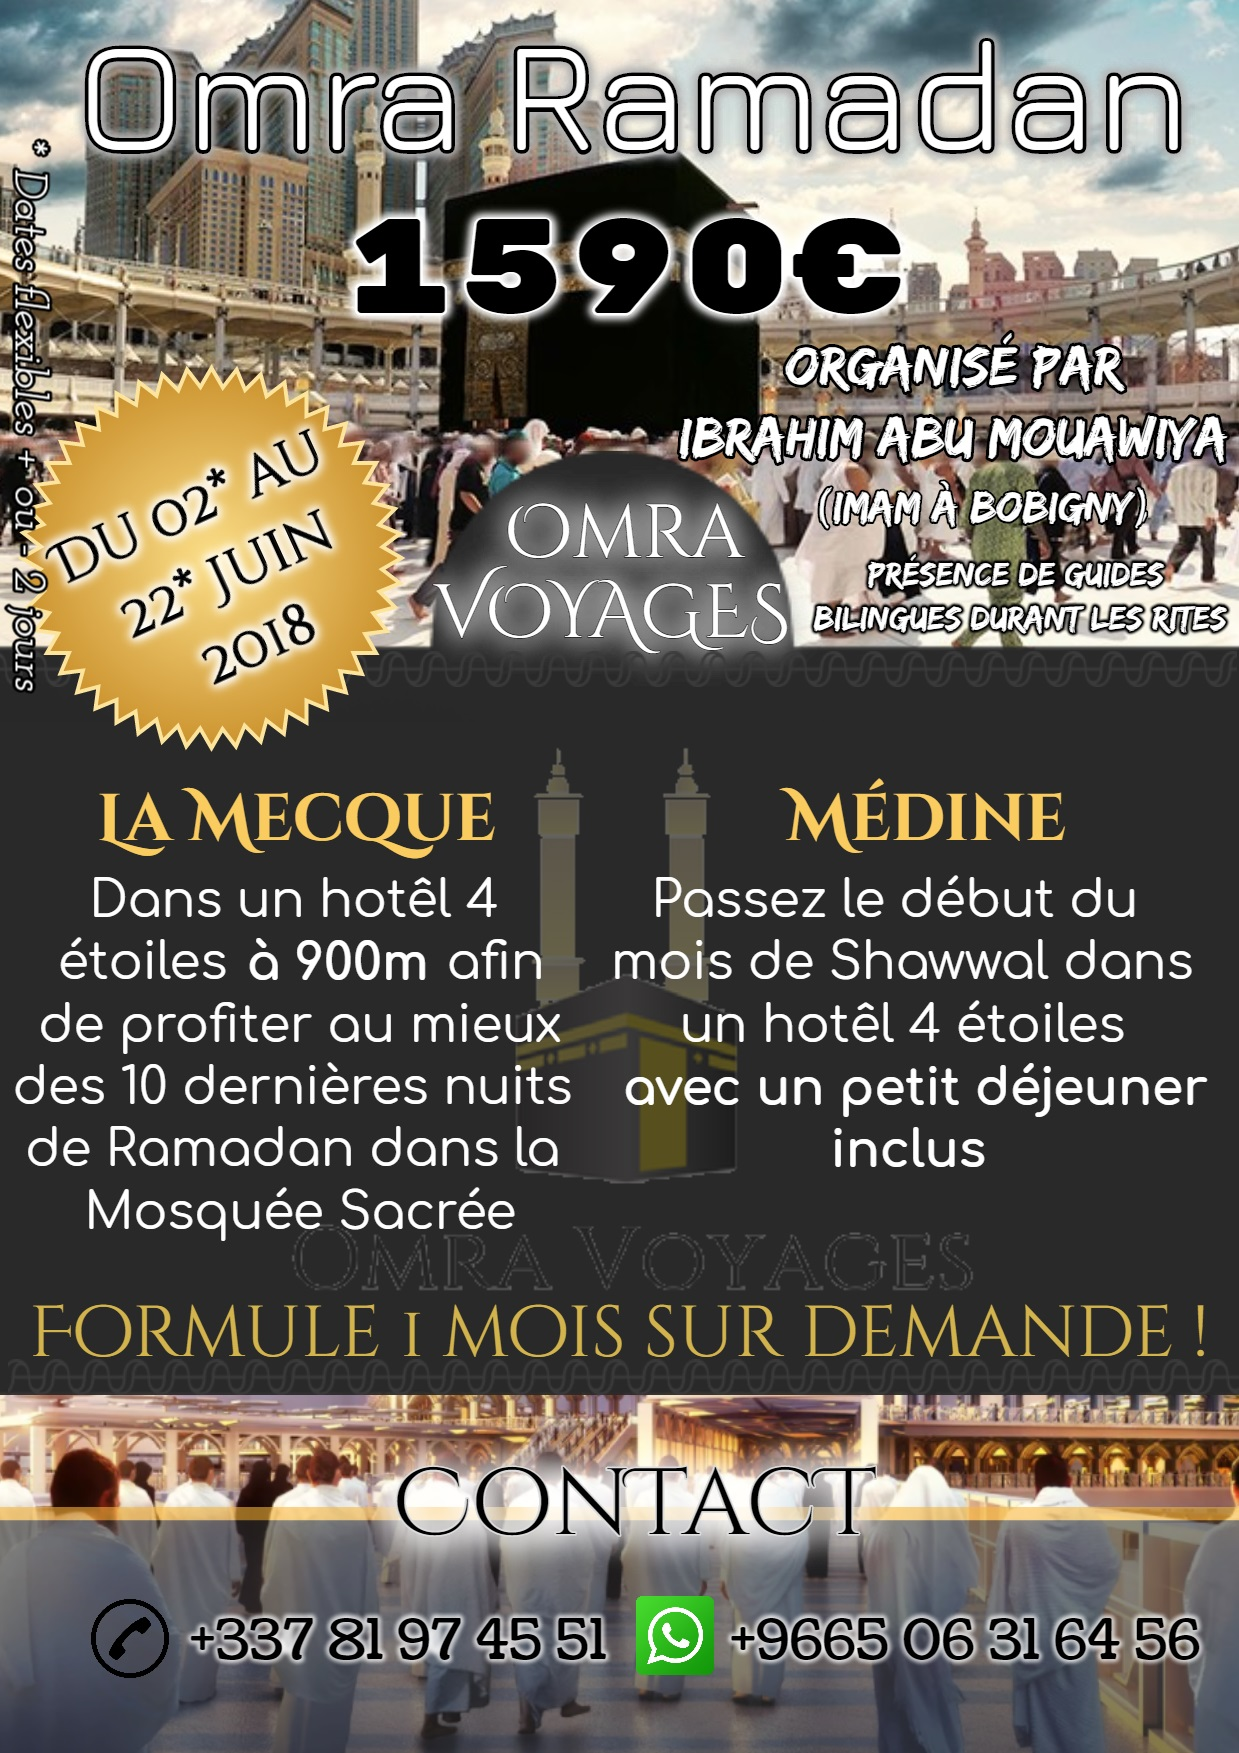 OMRA RAMADAN 2018 - OFFRE EXEPTIONNELLE !